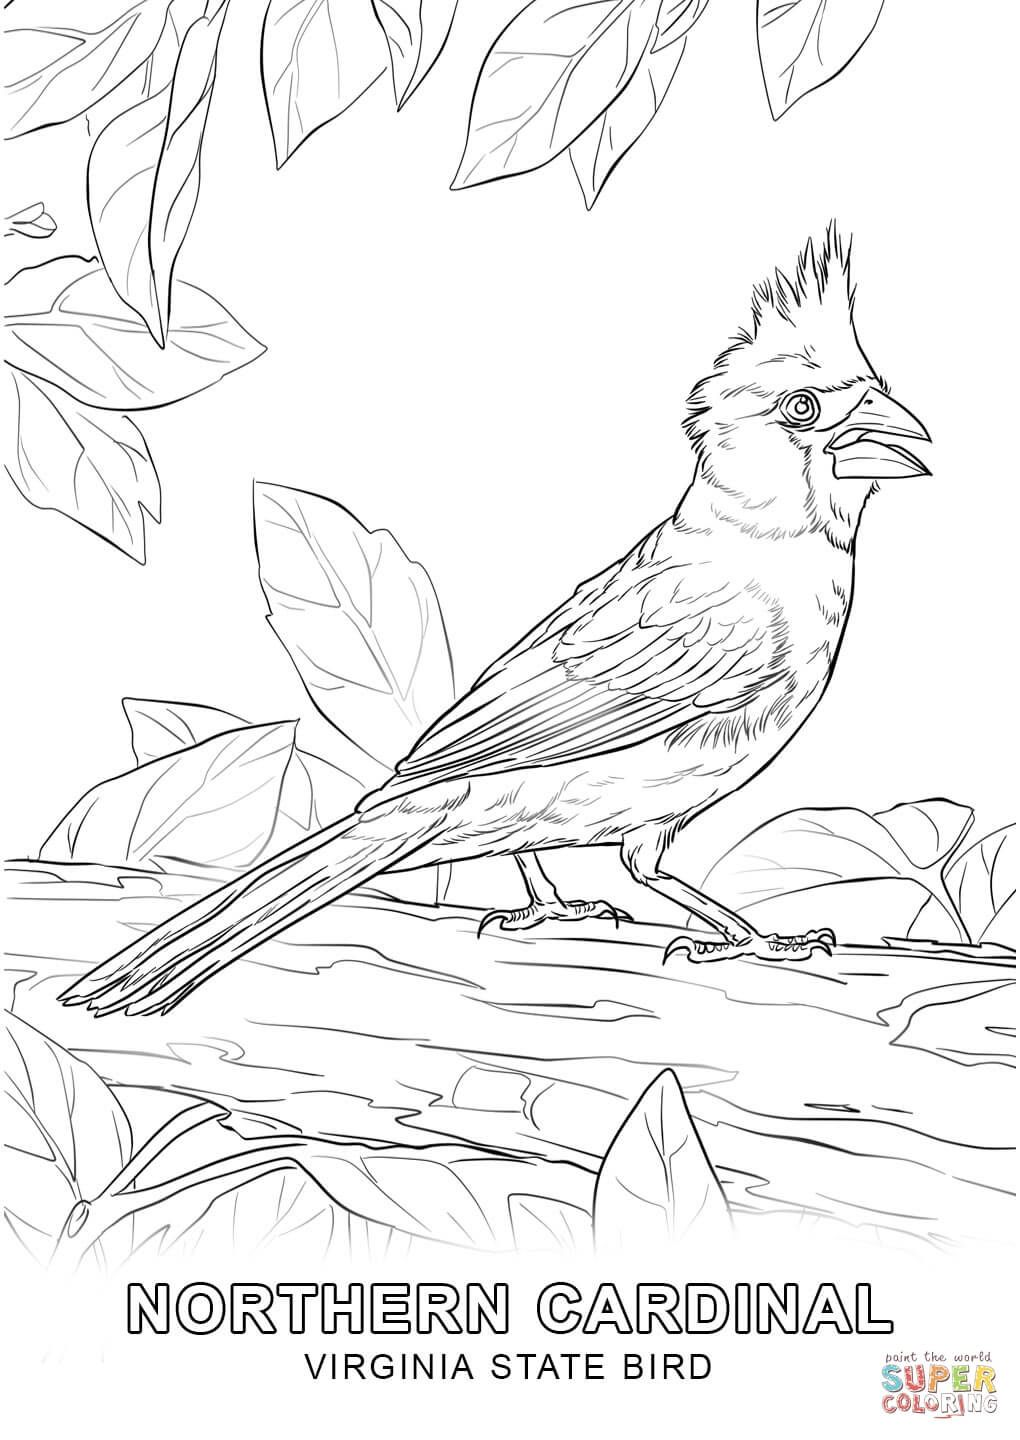 Virginia State Bird Coloring Page Jpg 1020 1440 Bird Coloring